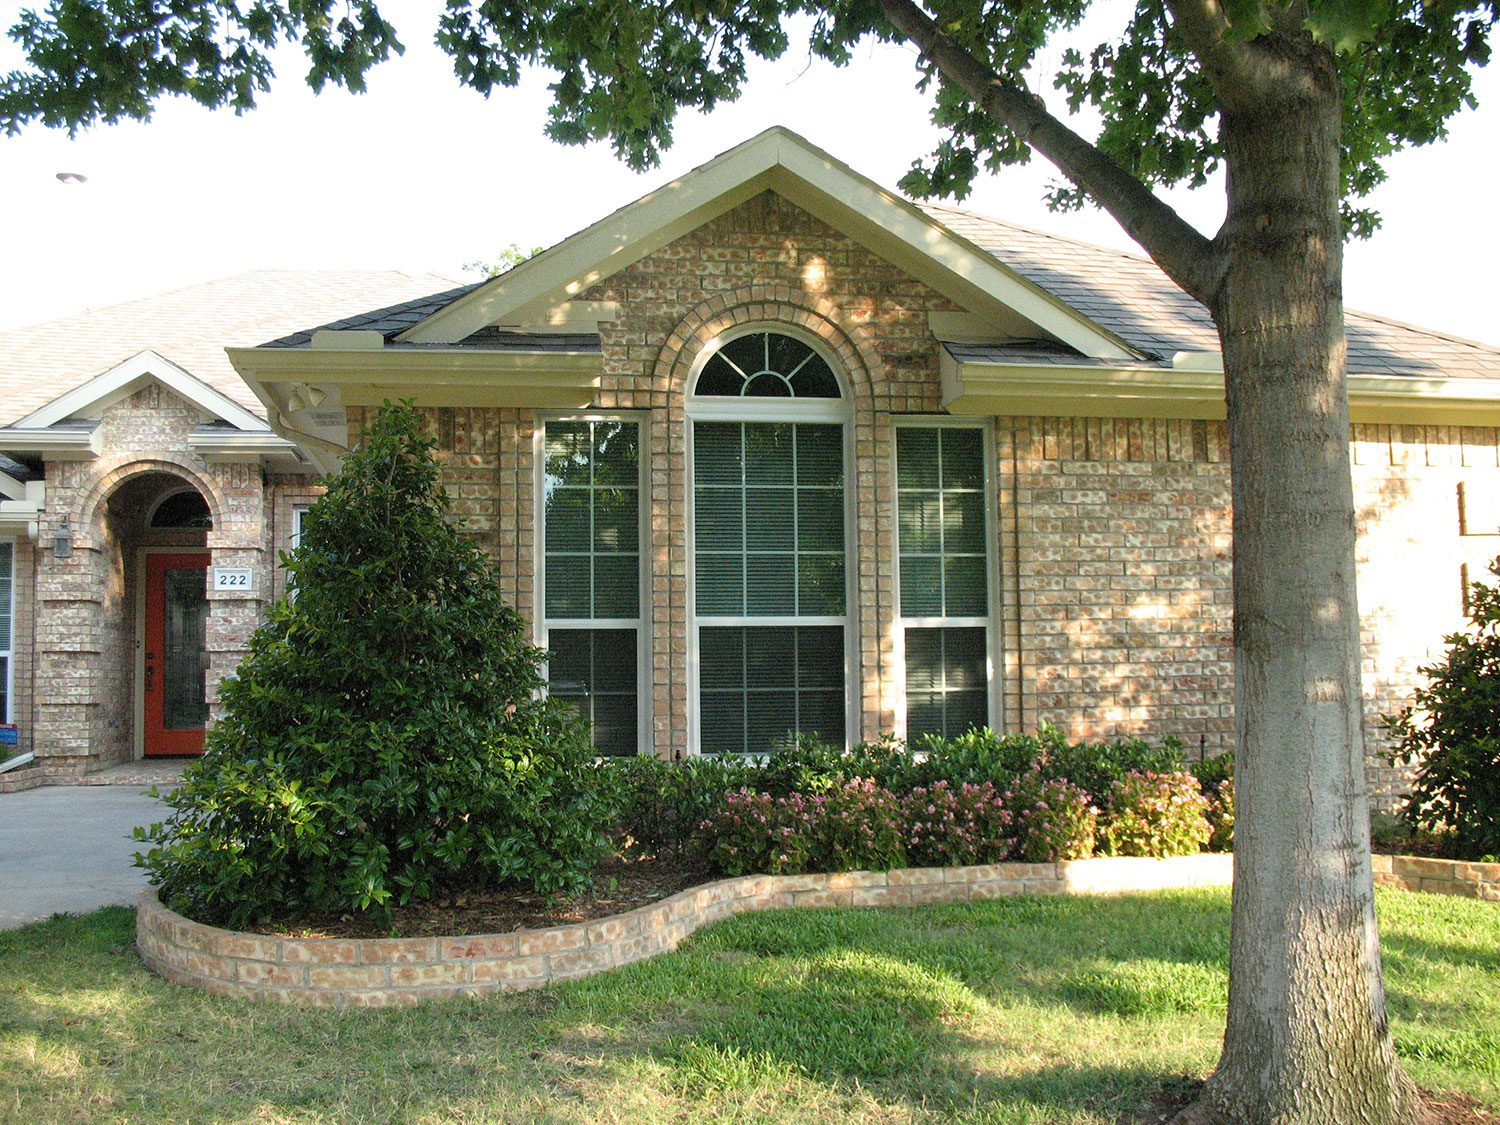 foster exteriors window company plano tx replacement windows - Replacement Windows Doors Plano TX